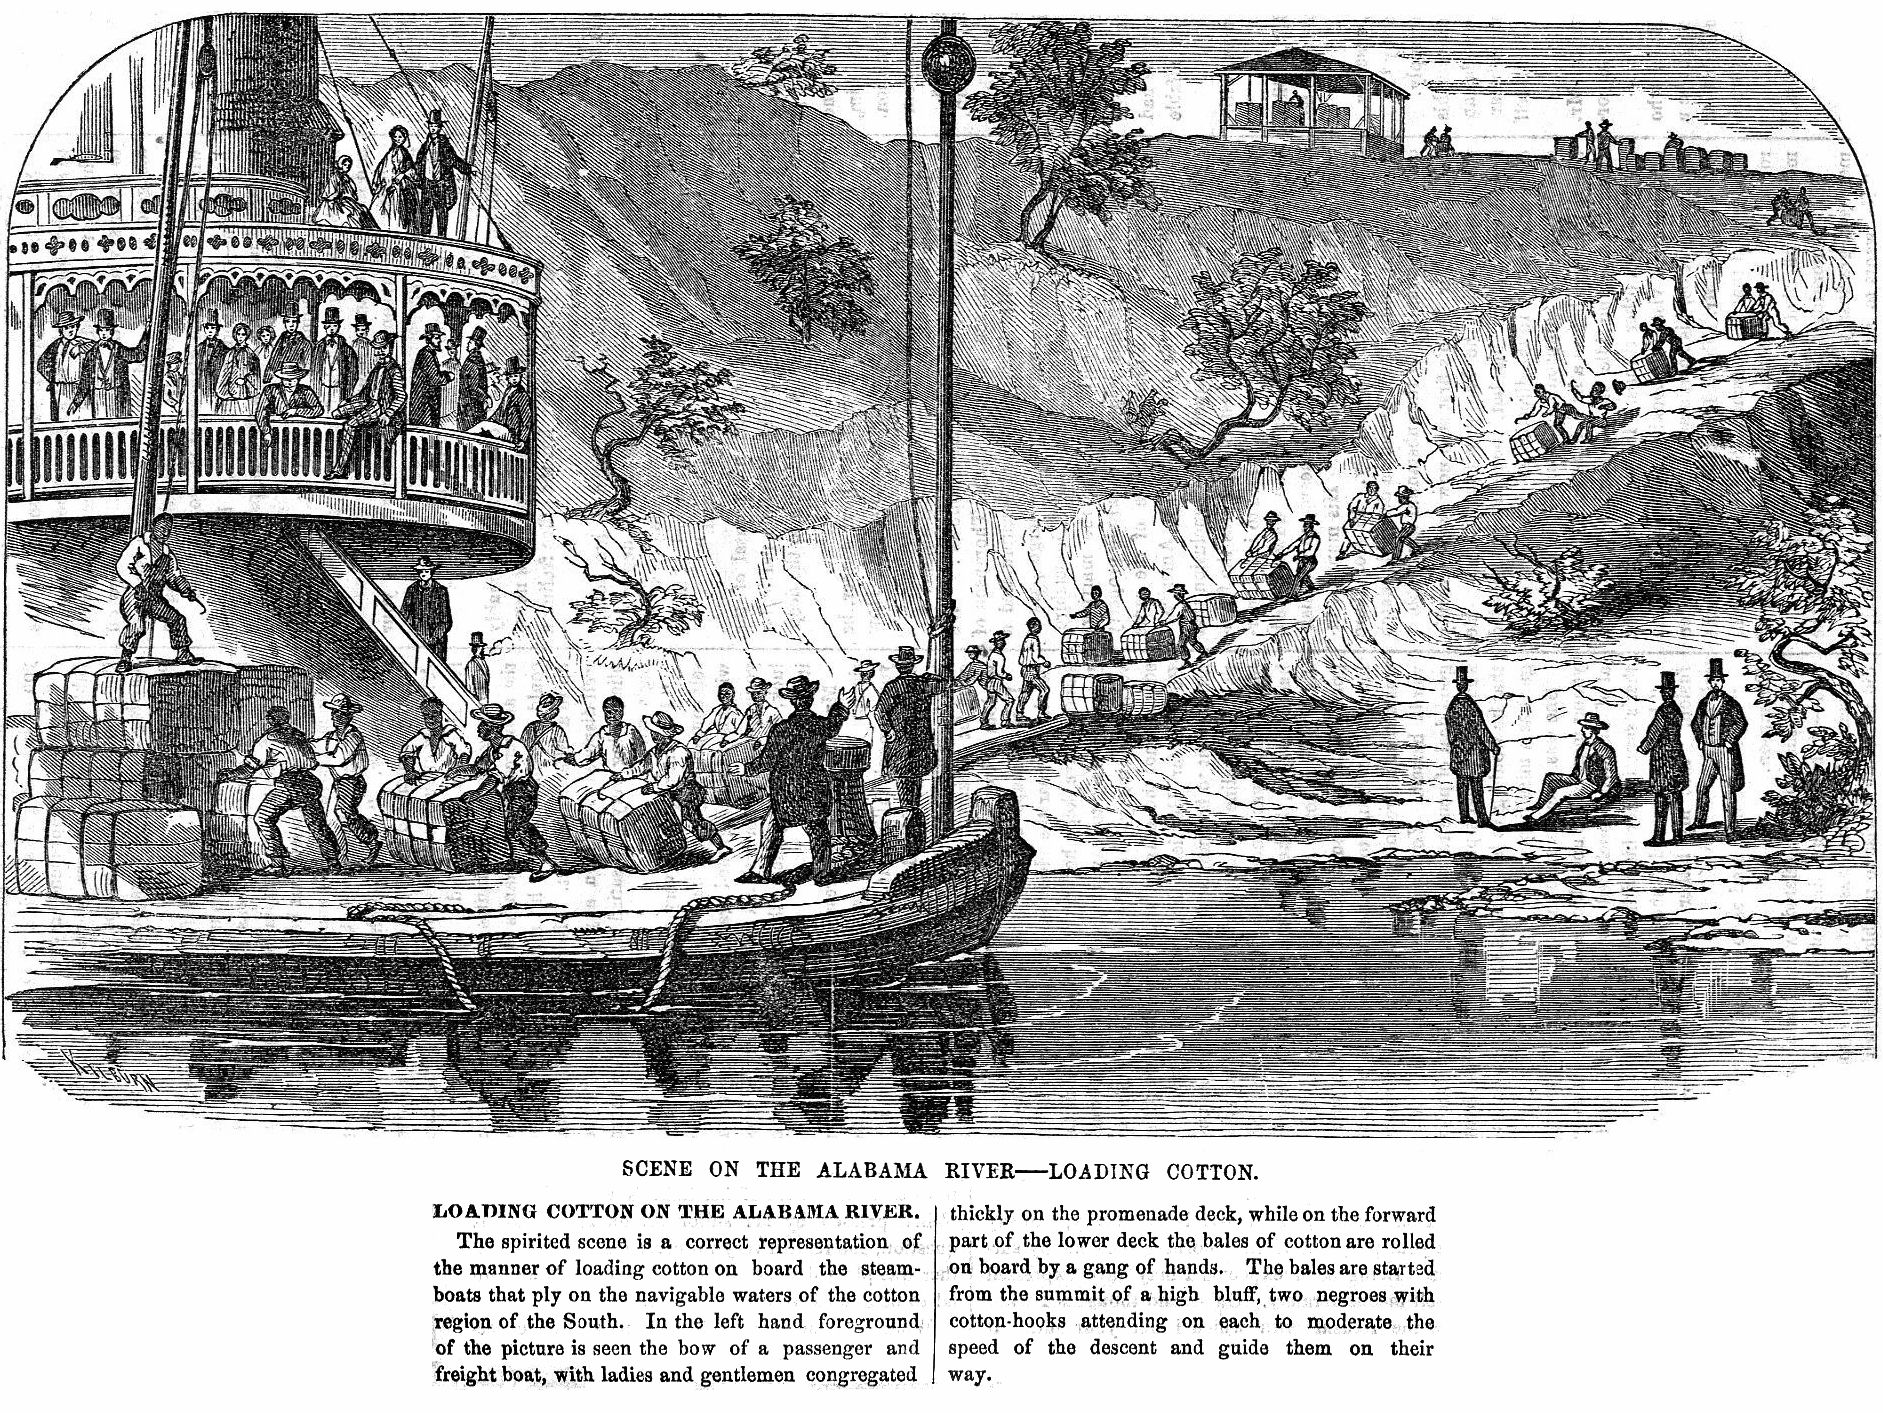 1865 illustration of loading cotton on steamboats